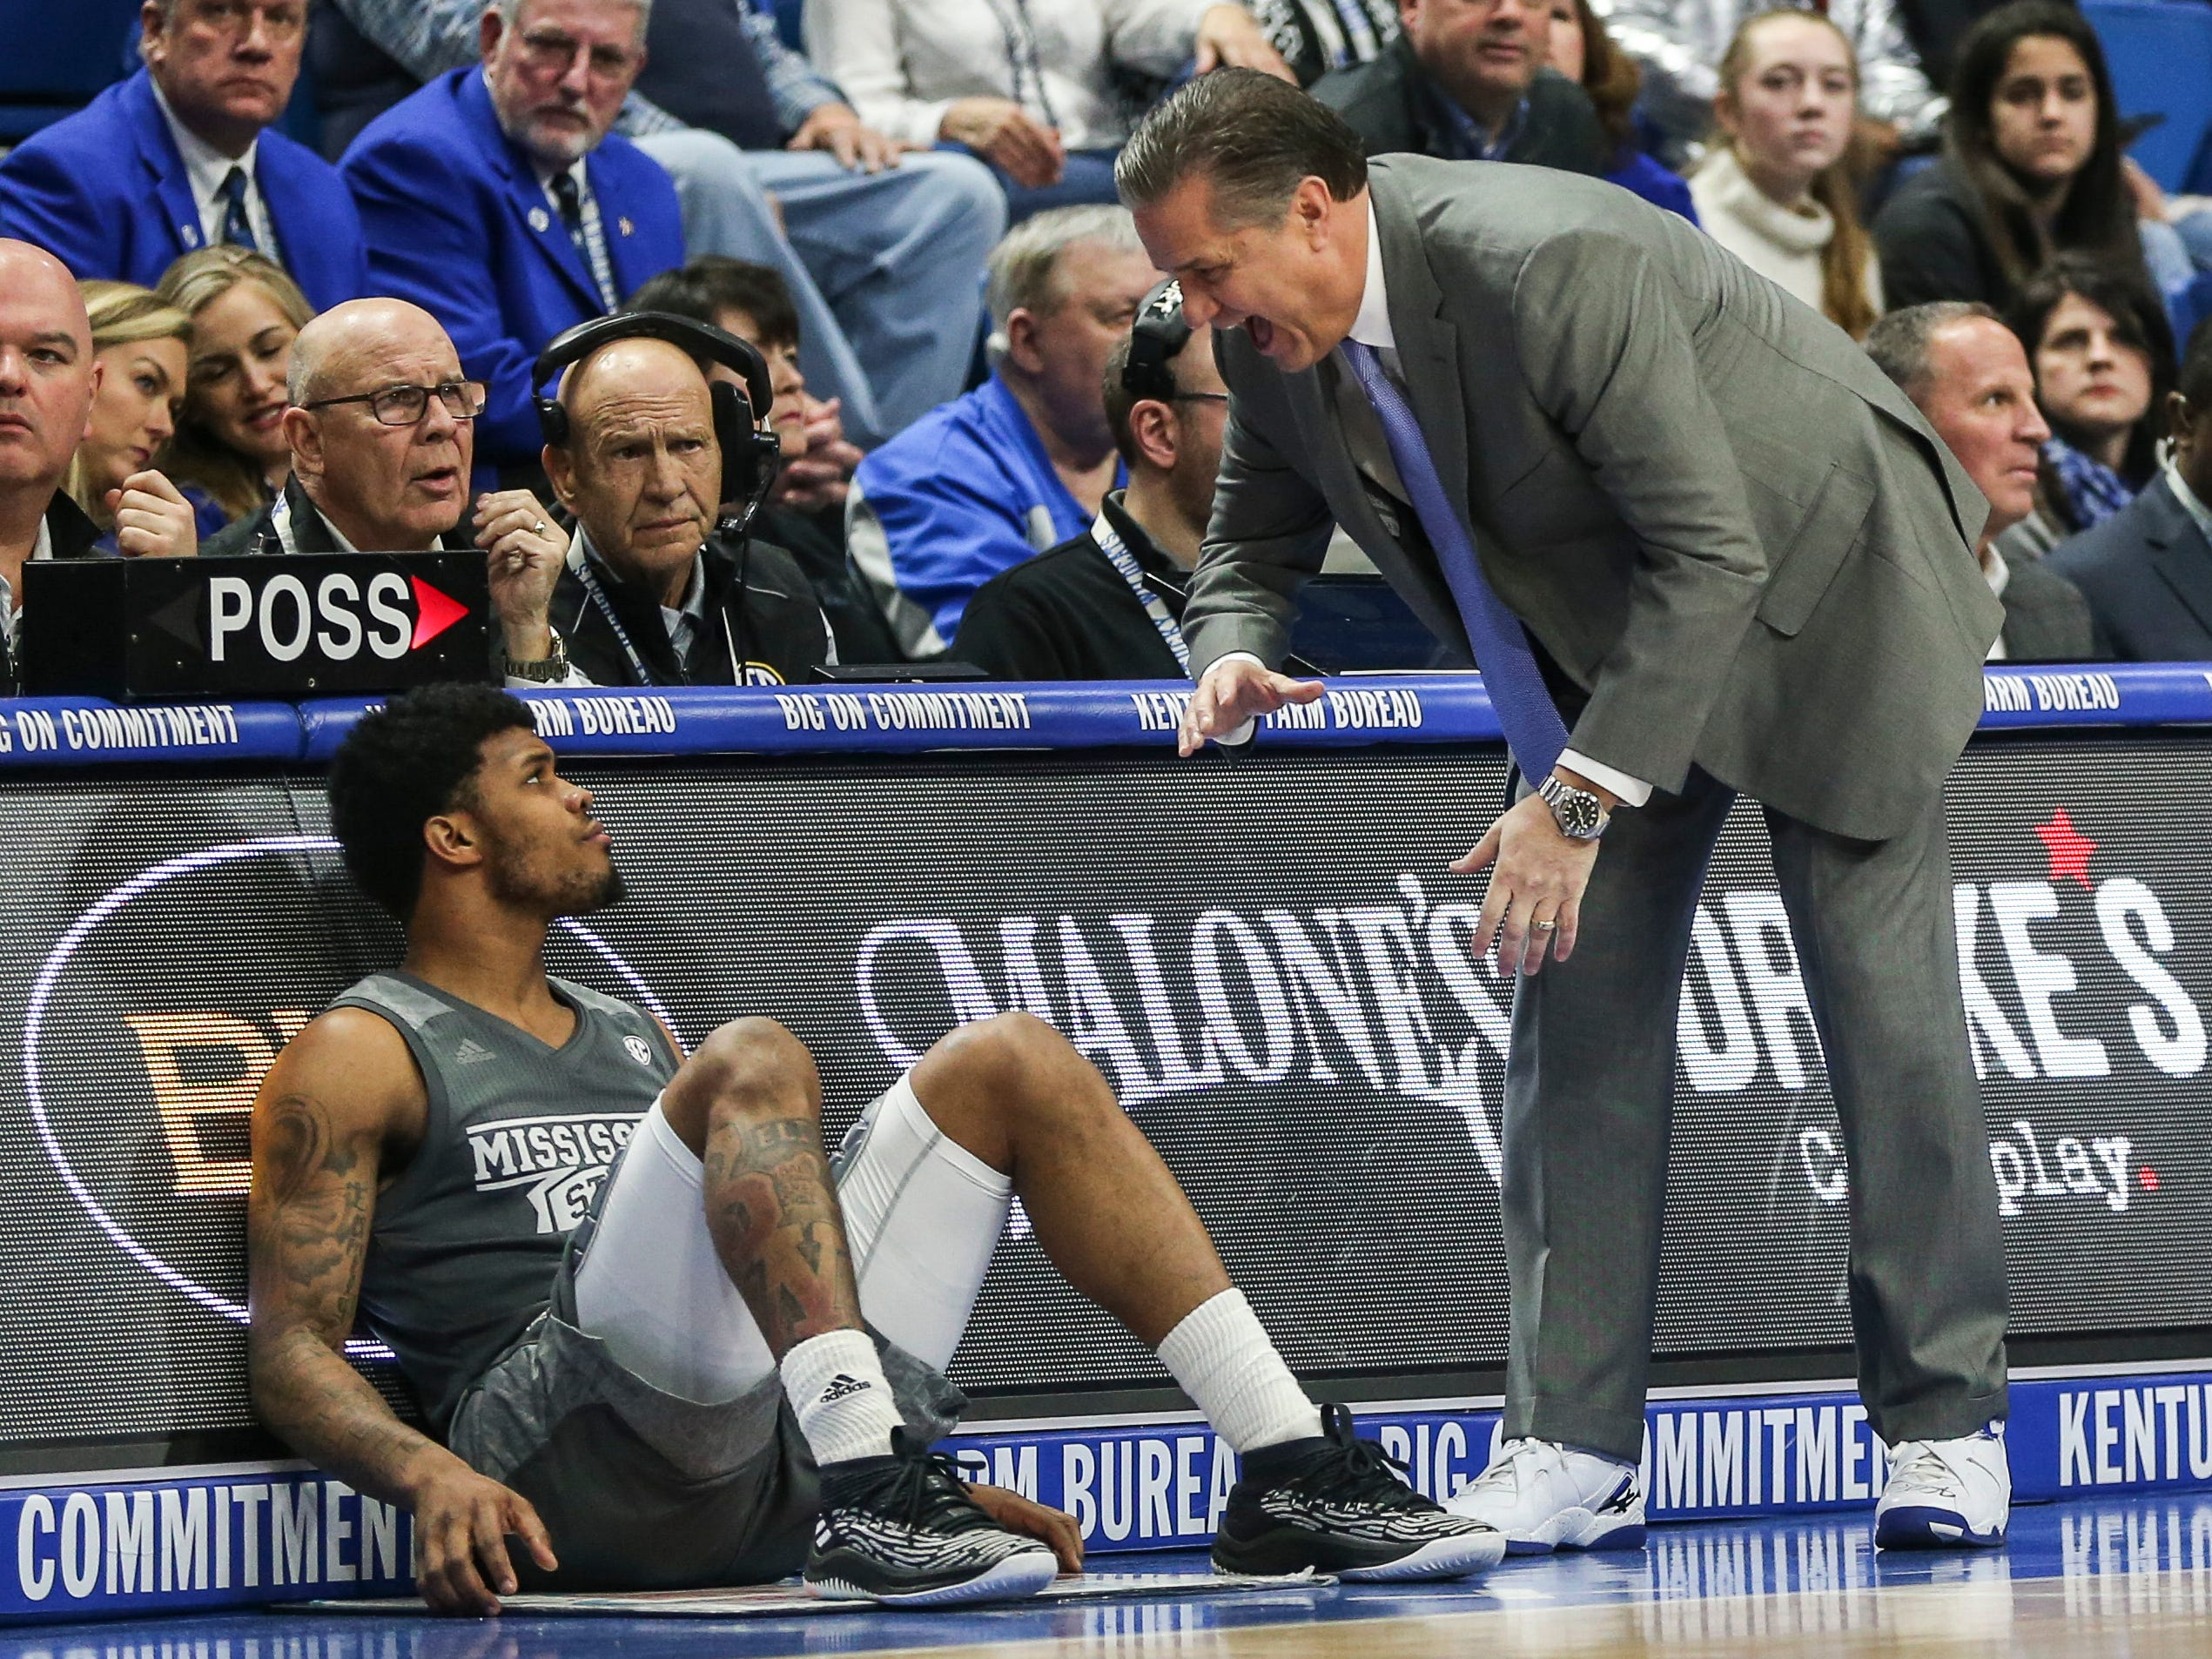 Kentucky coach John Calipari wearing a pair of Drake shoes against Mississippi State Tuesday night at Rupp Arena in Lexington. January 22, 2019